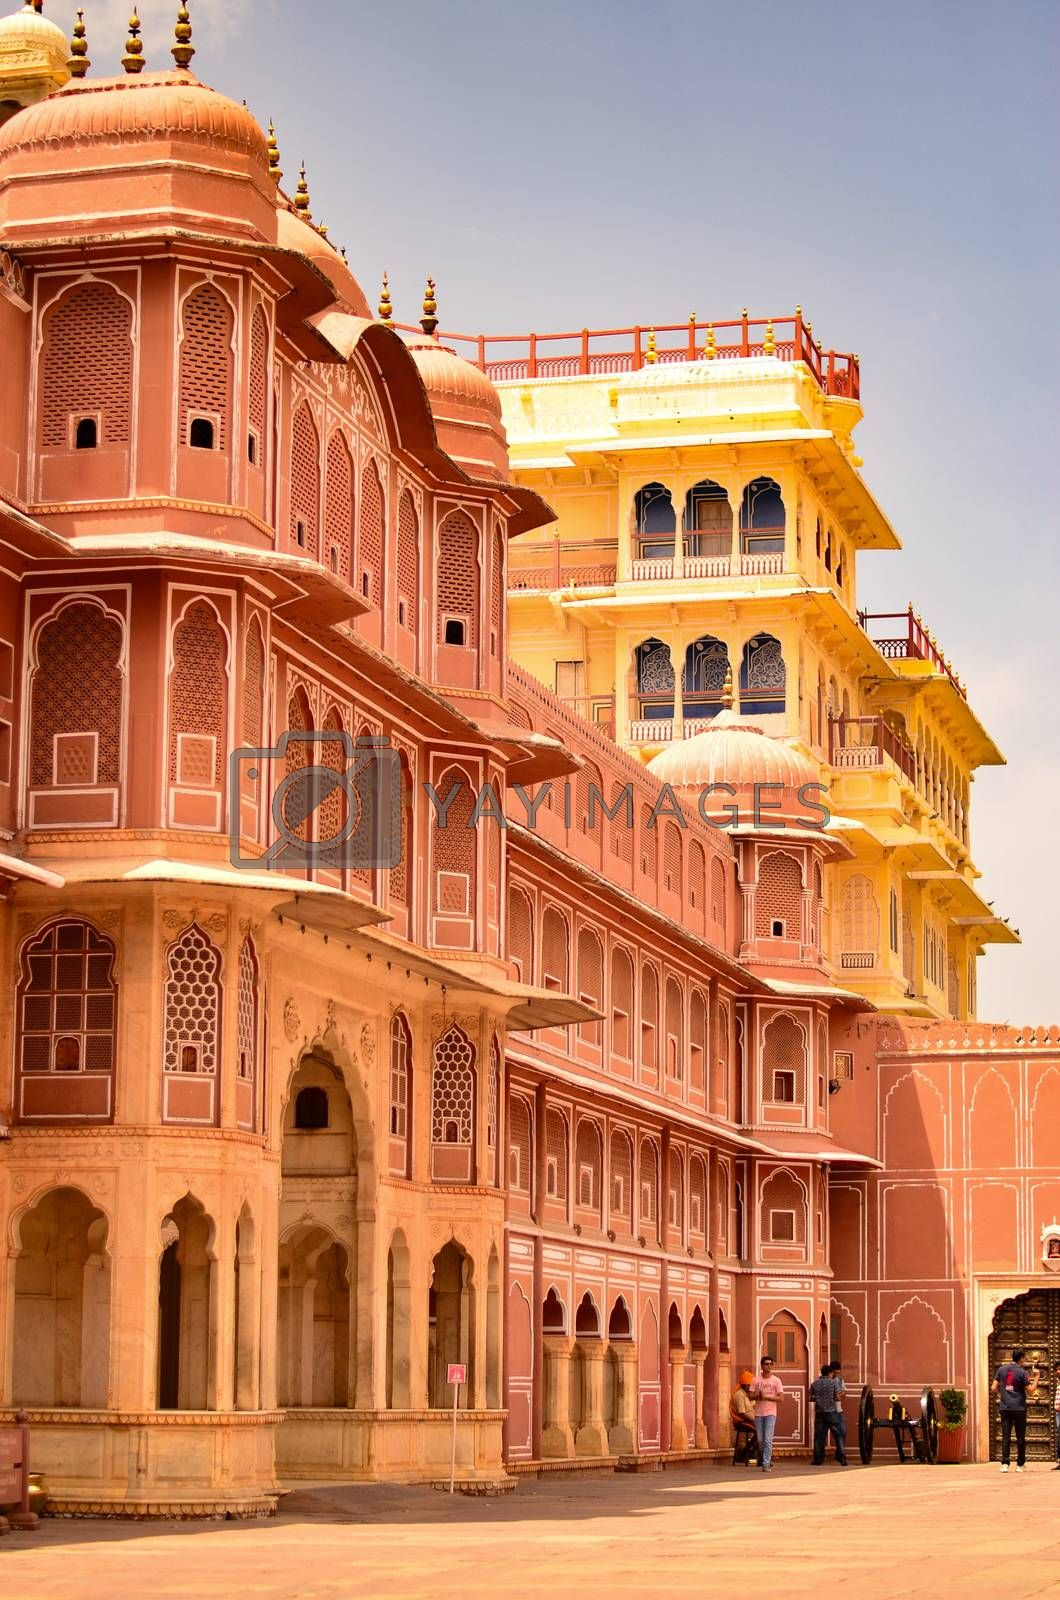 Jaipur, Rajasthan, India, 2020. Section of City Palace, which includes the Chandra Mahal and Mubarak Mahal palaces and other buildings, is a palace complex in Jaipur.